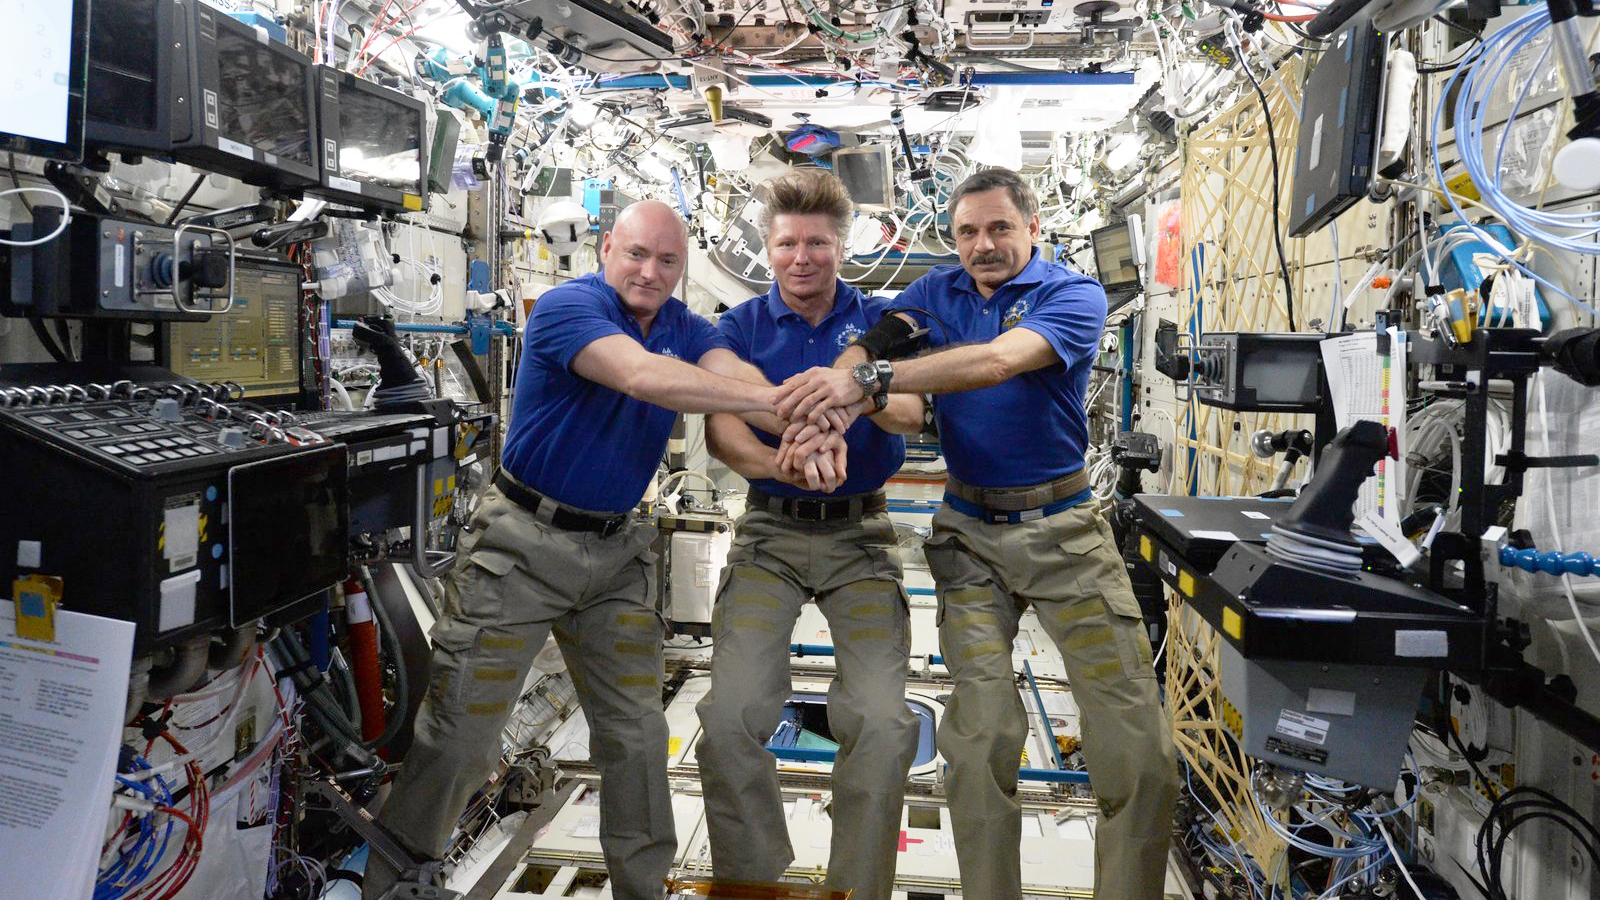 Expedition 44 trio